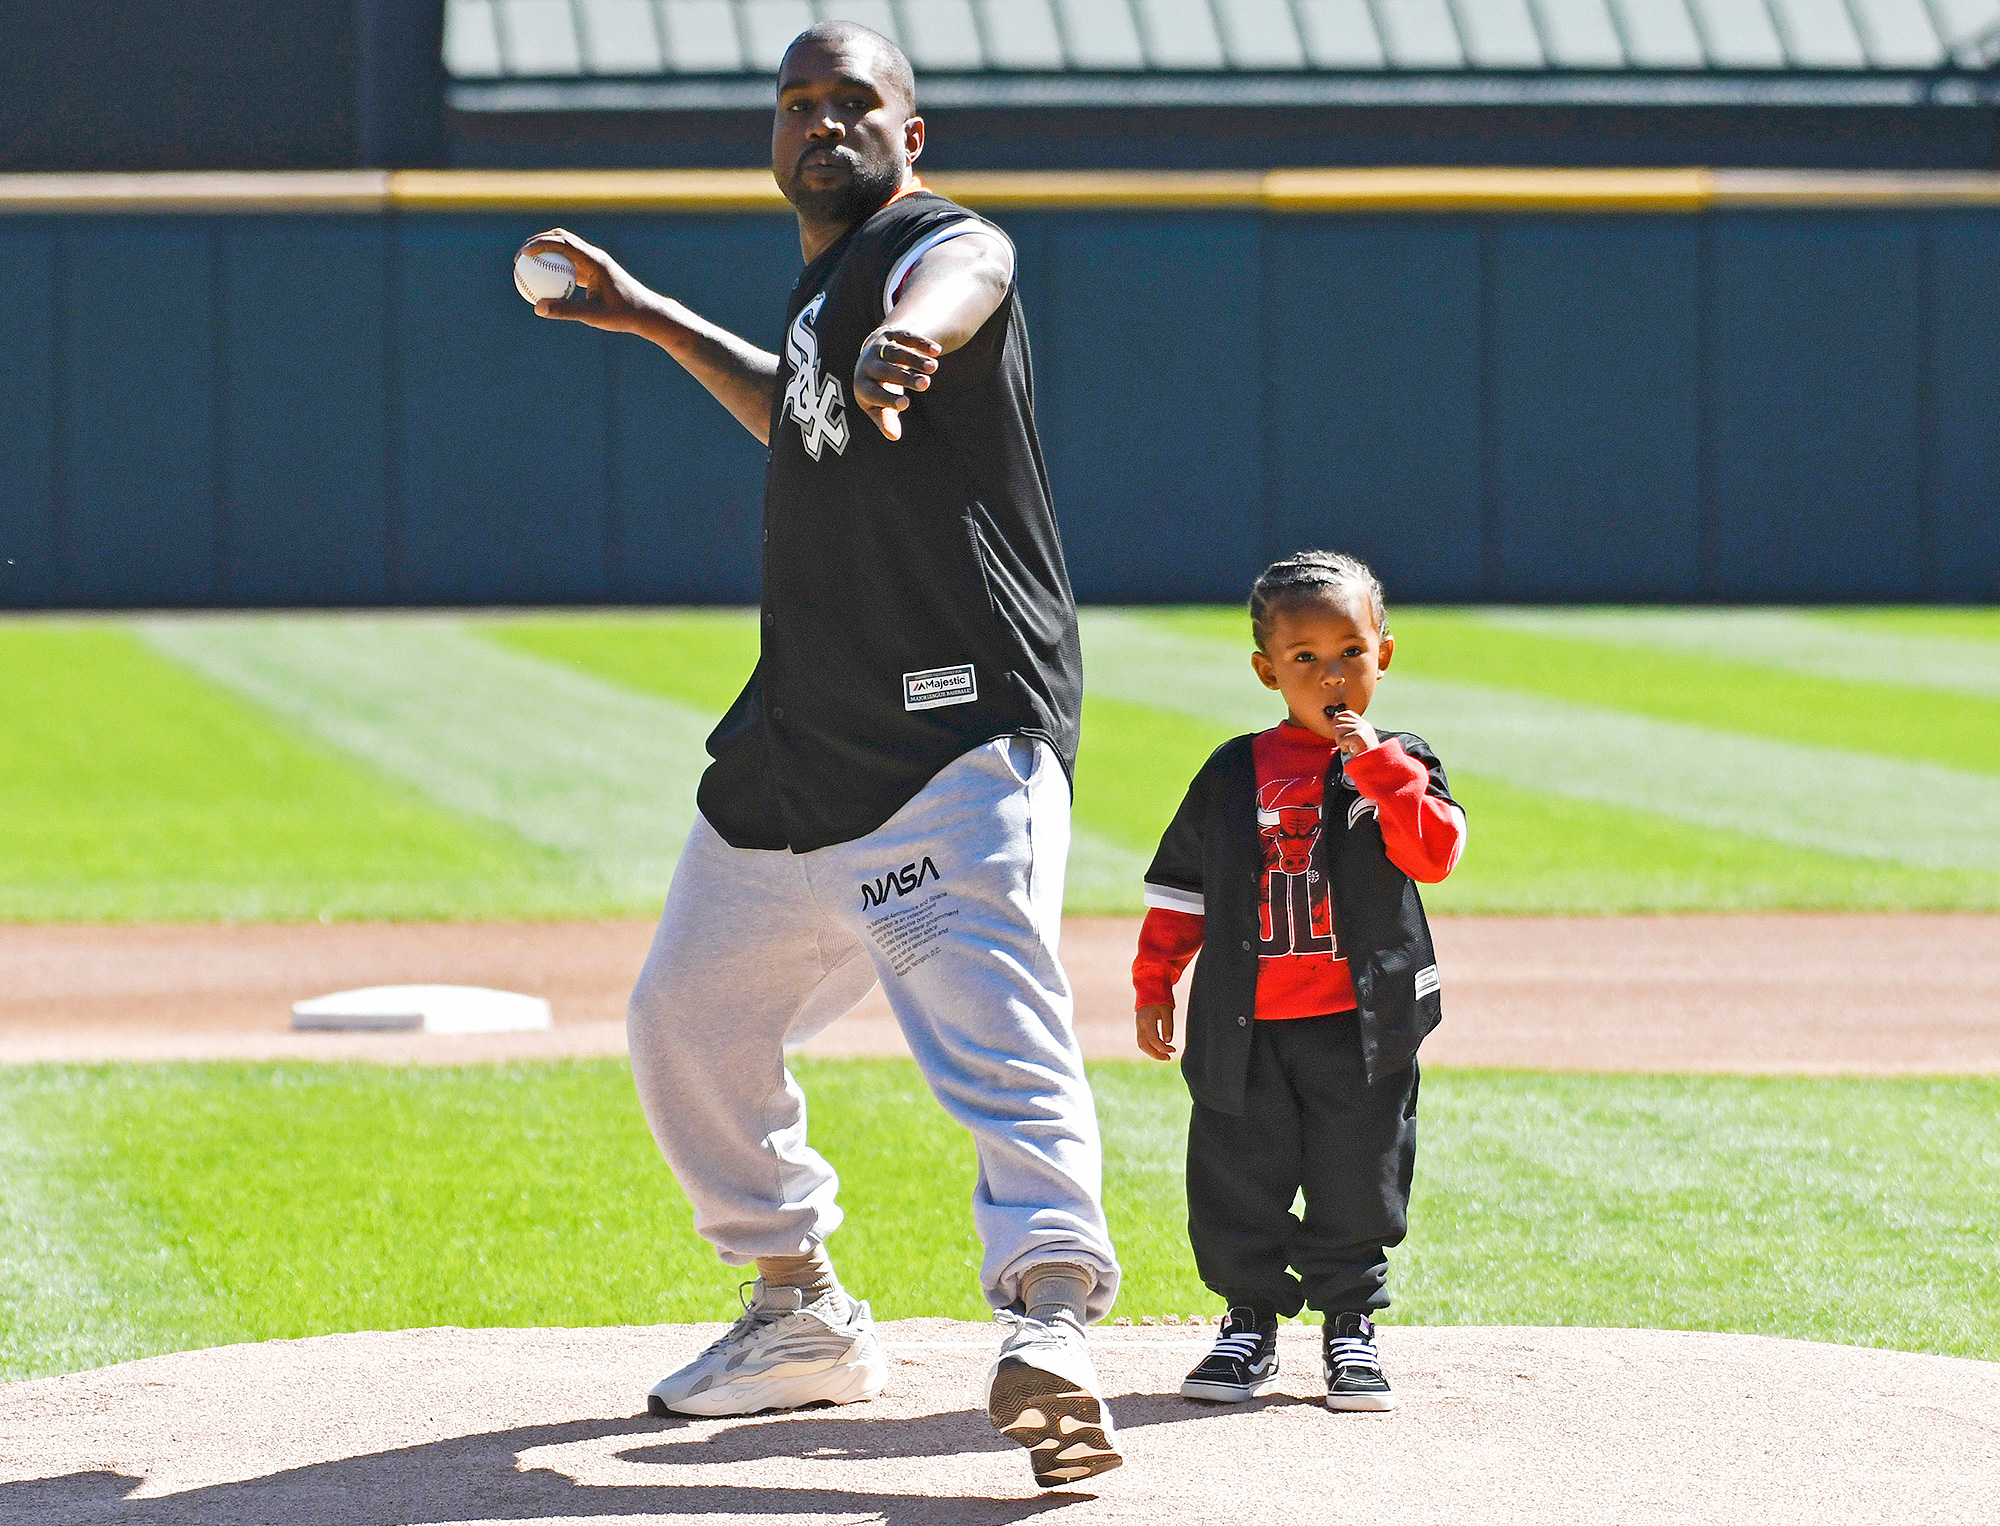 Kanye West, Saint West, First Pitch, Cubs, White Sox - Kanye West and his son Saint throw out a ceremonial first pitch before the game between the Chicago White Sox and the Chicago Cubs on September 23, 2018 at Guaranteed Rate Field in Chicago, Illinois.